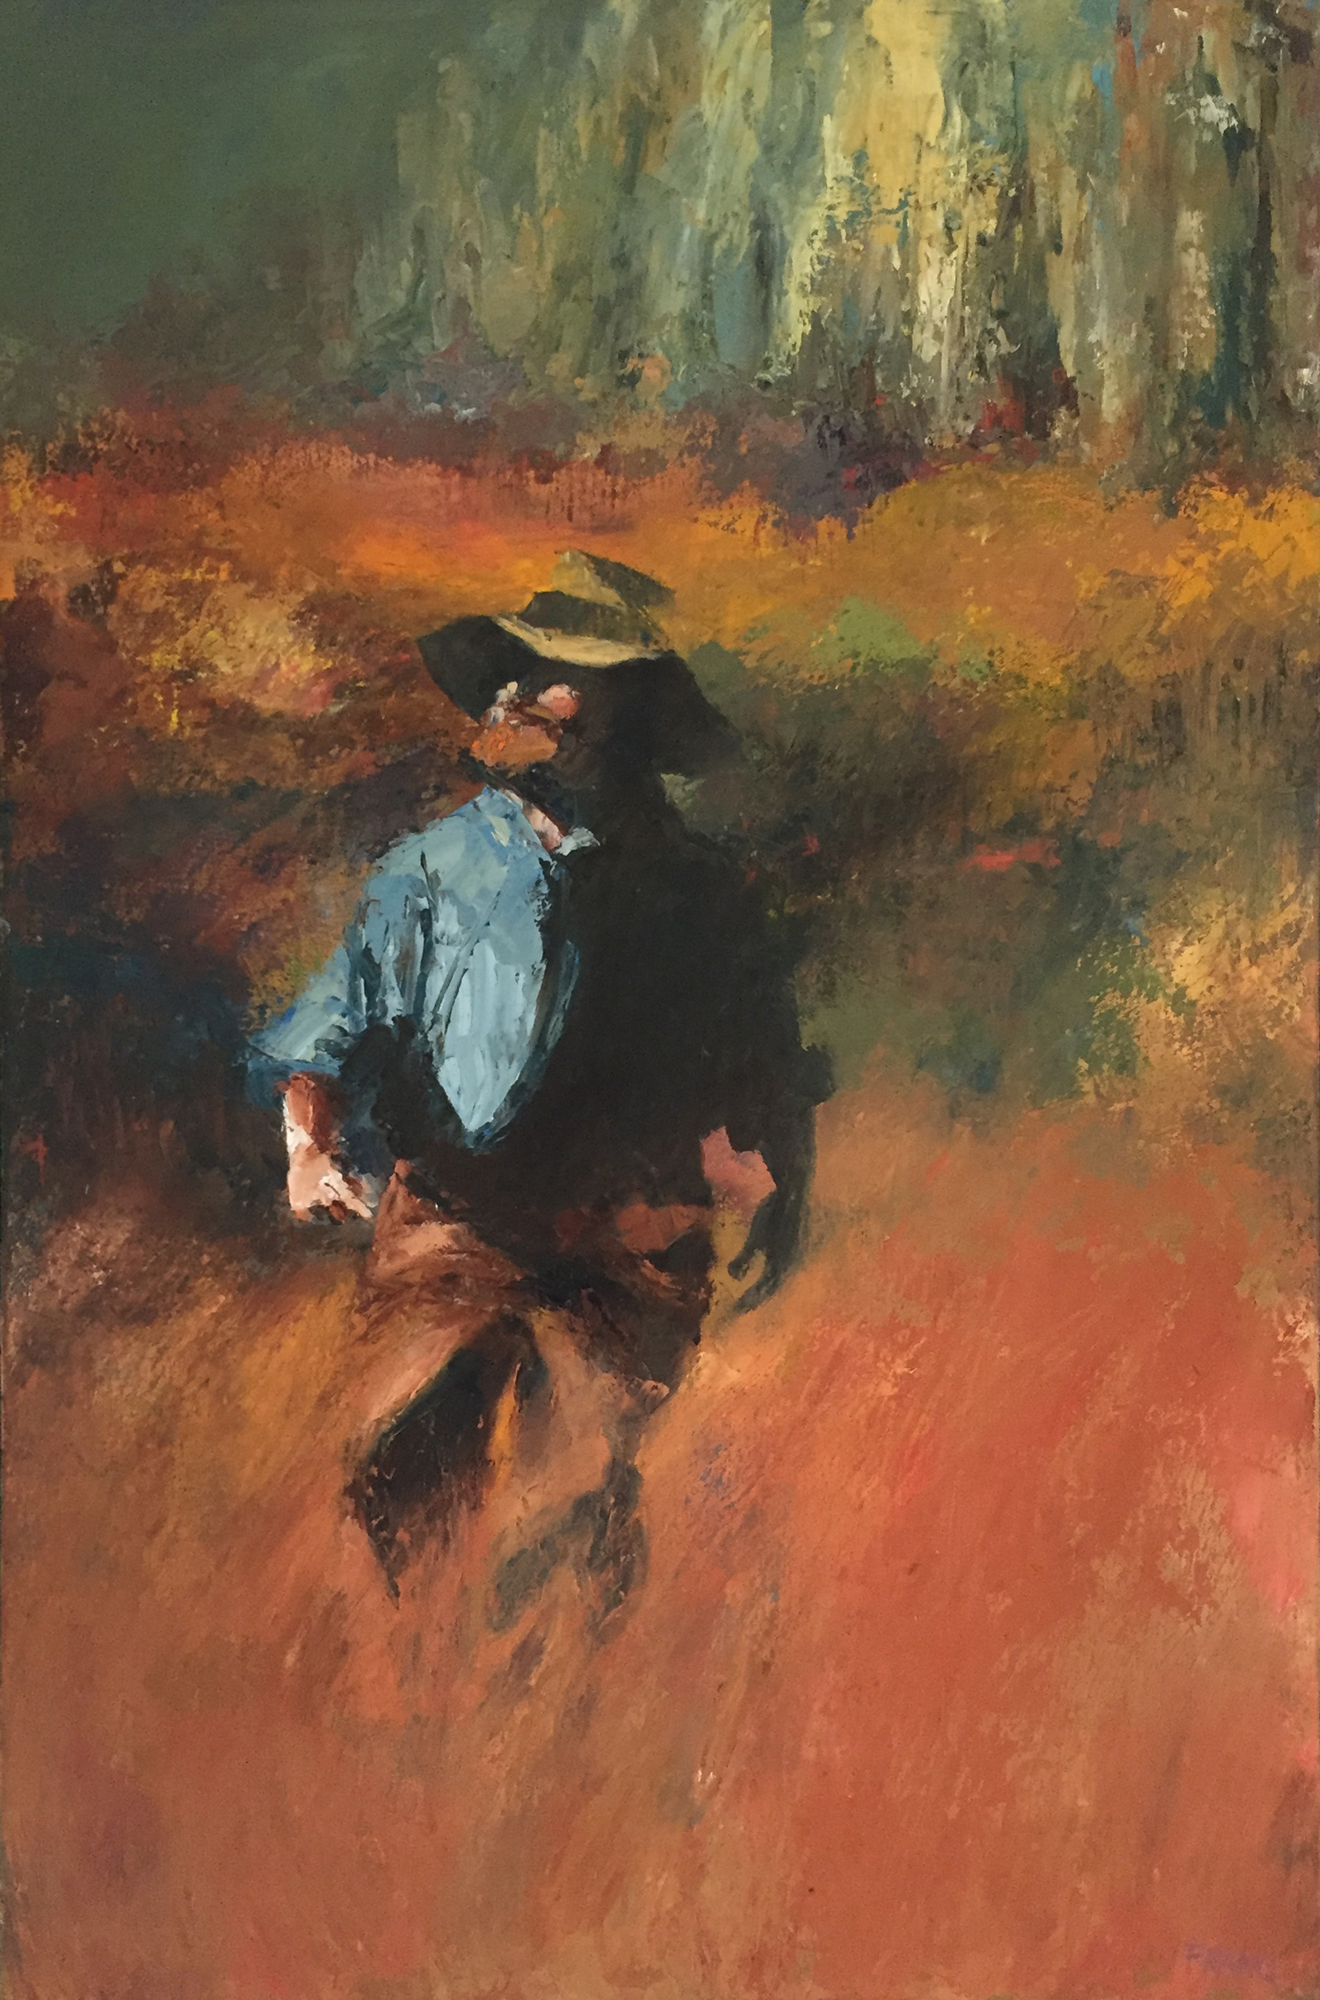 Jackaroo-Water-Colour-Painting-by-Frano.jpg